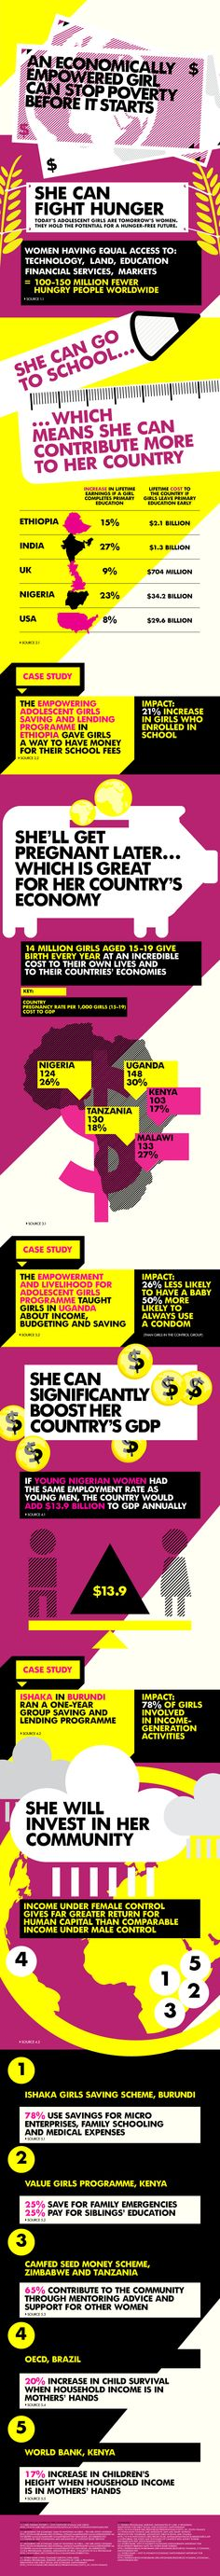 GIRL_EFFECT_INFOGRAPHIC_ECONOMICALLY-EMPOWERED